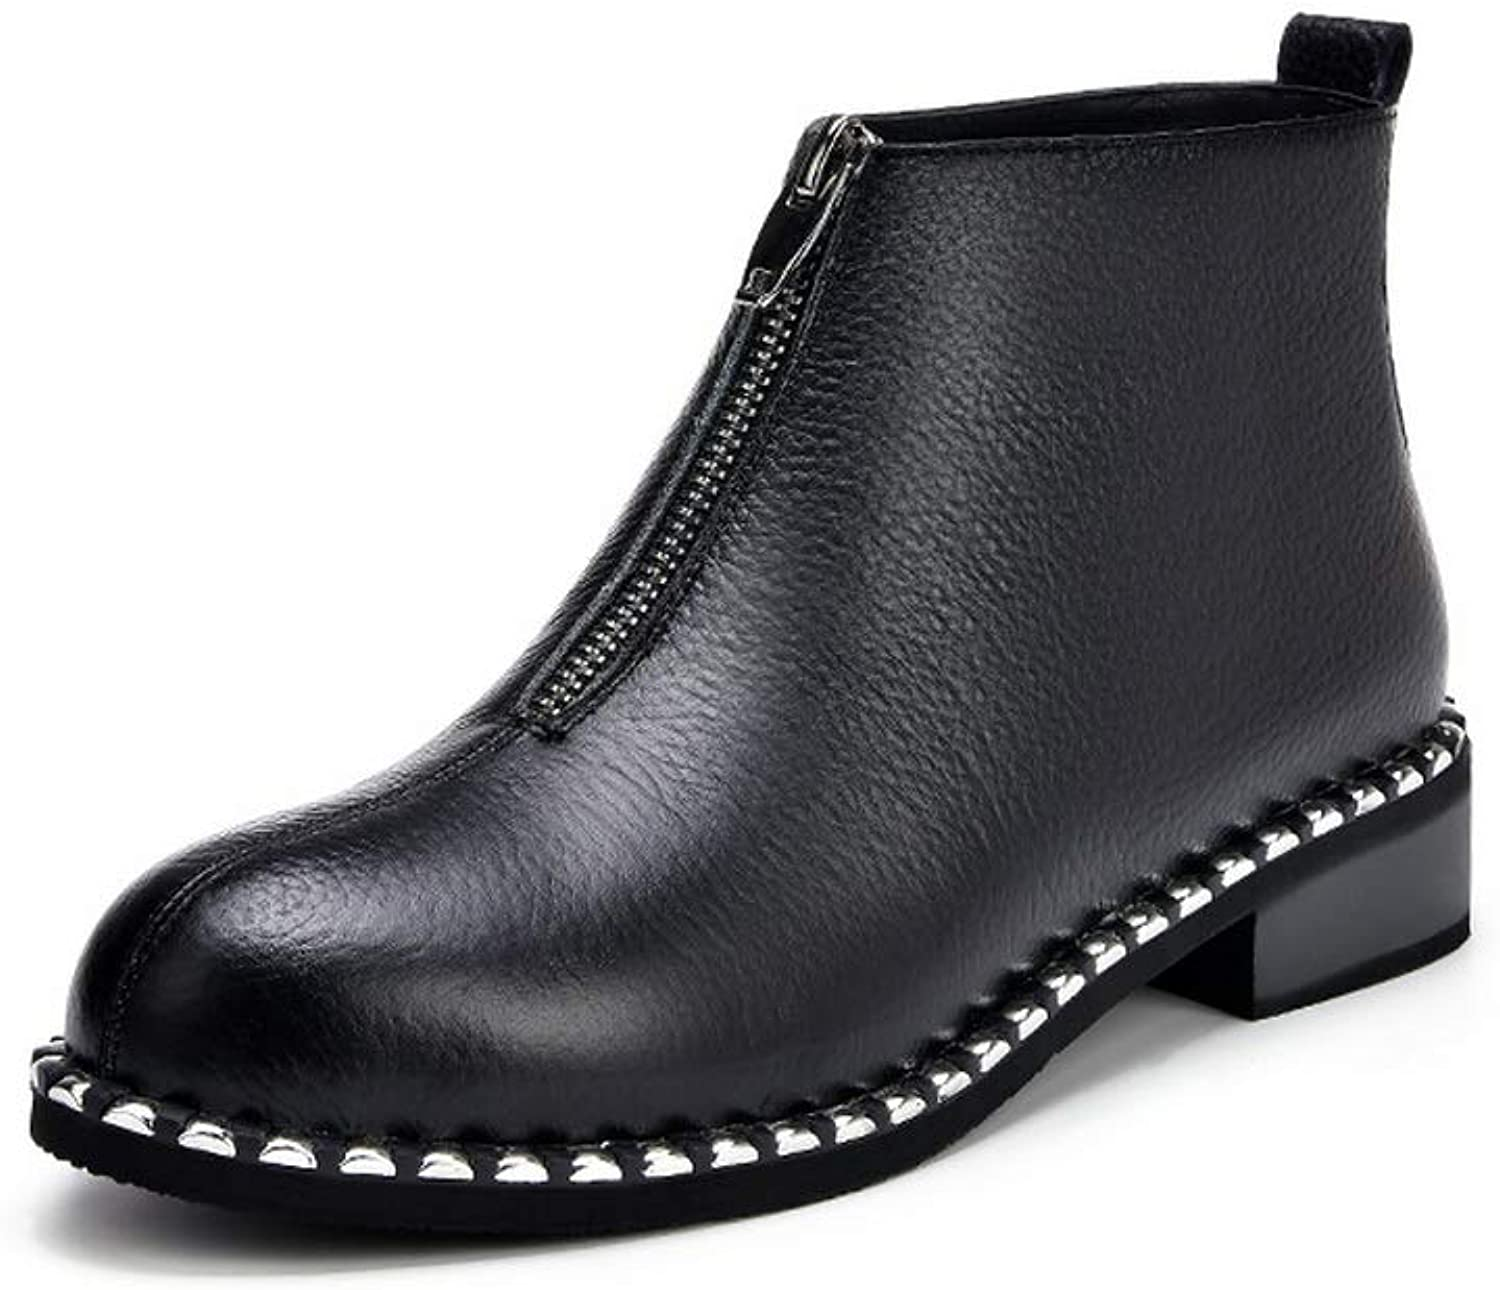 AdeeSu Womens Hounds-Tooth Fabric Boots Leather Boots SXE04913